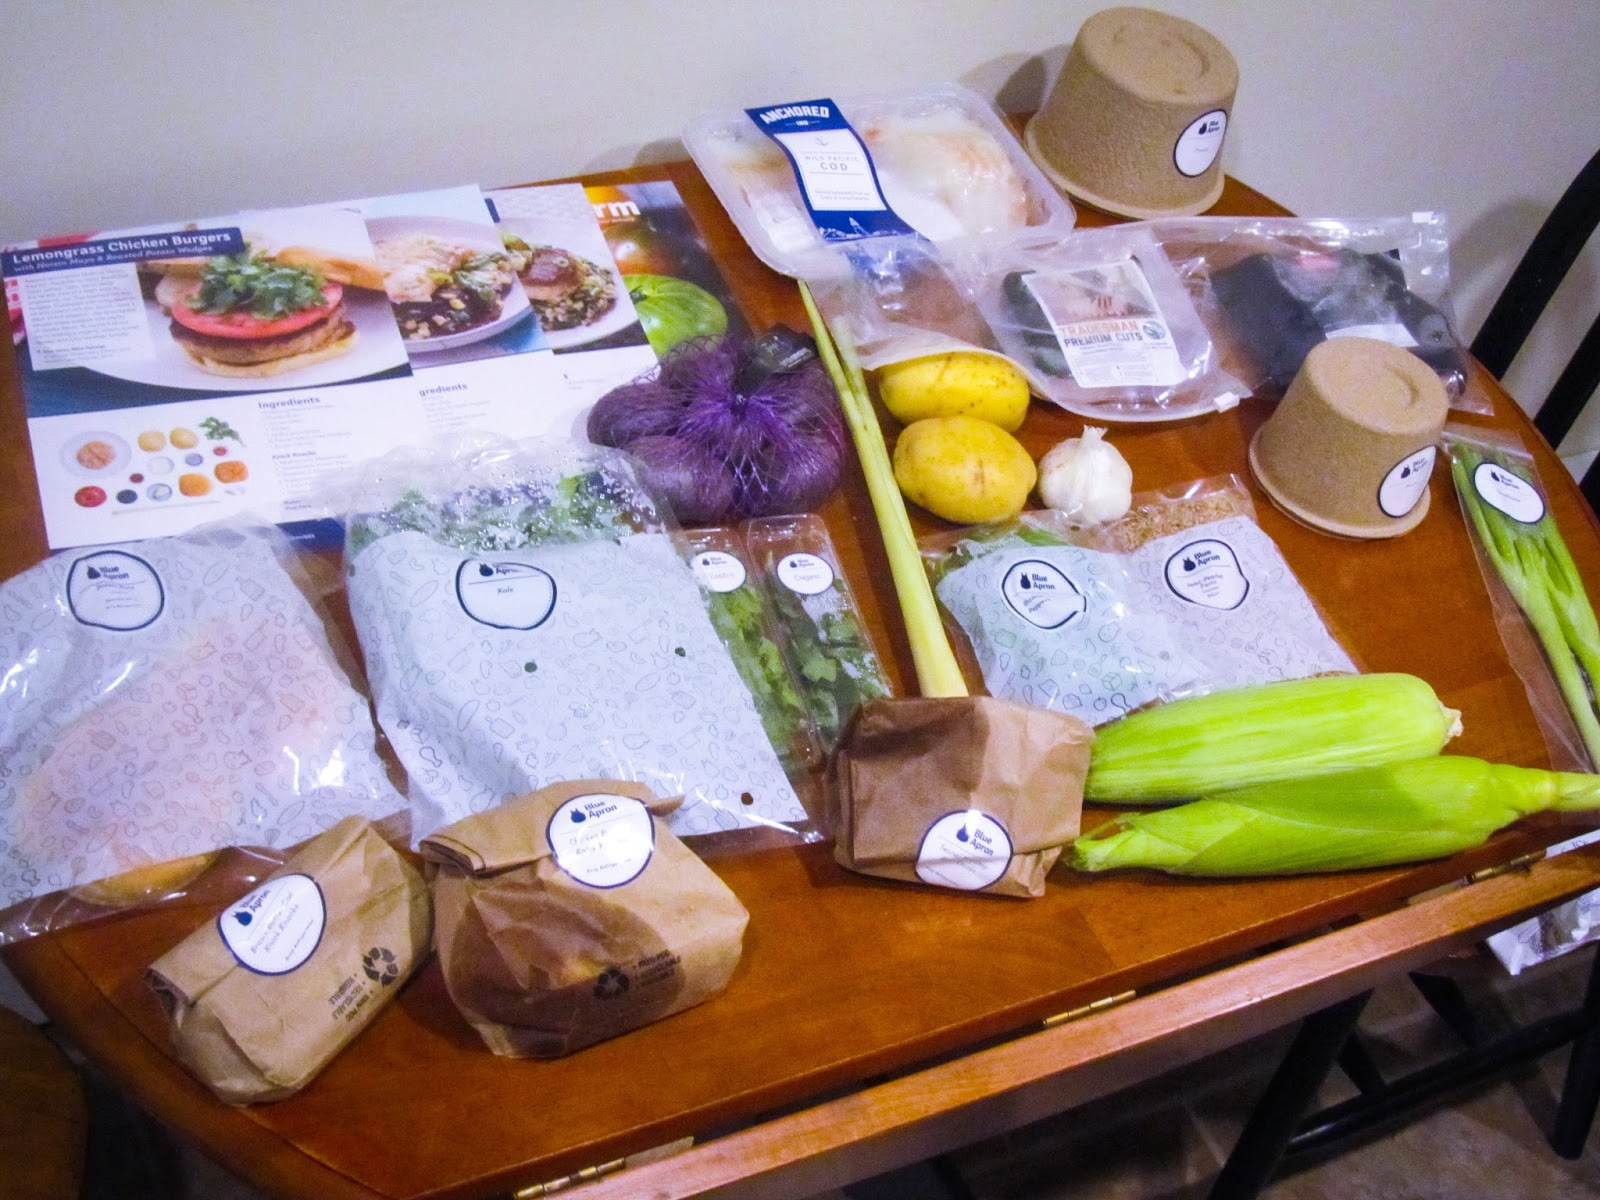 Blue apron lemongrass burger - And Here Is What All Of The Goodies Look Like Unboxed There Was So Much Food